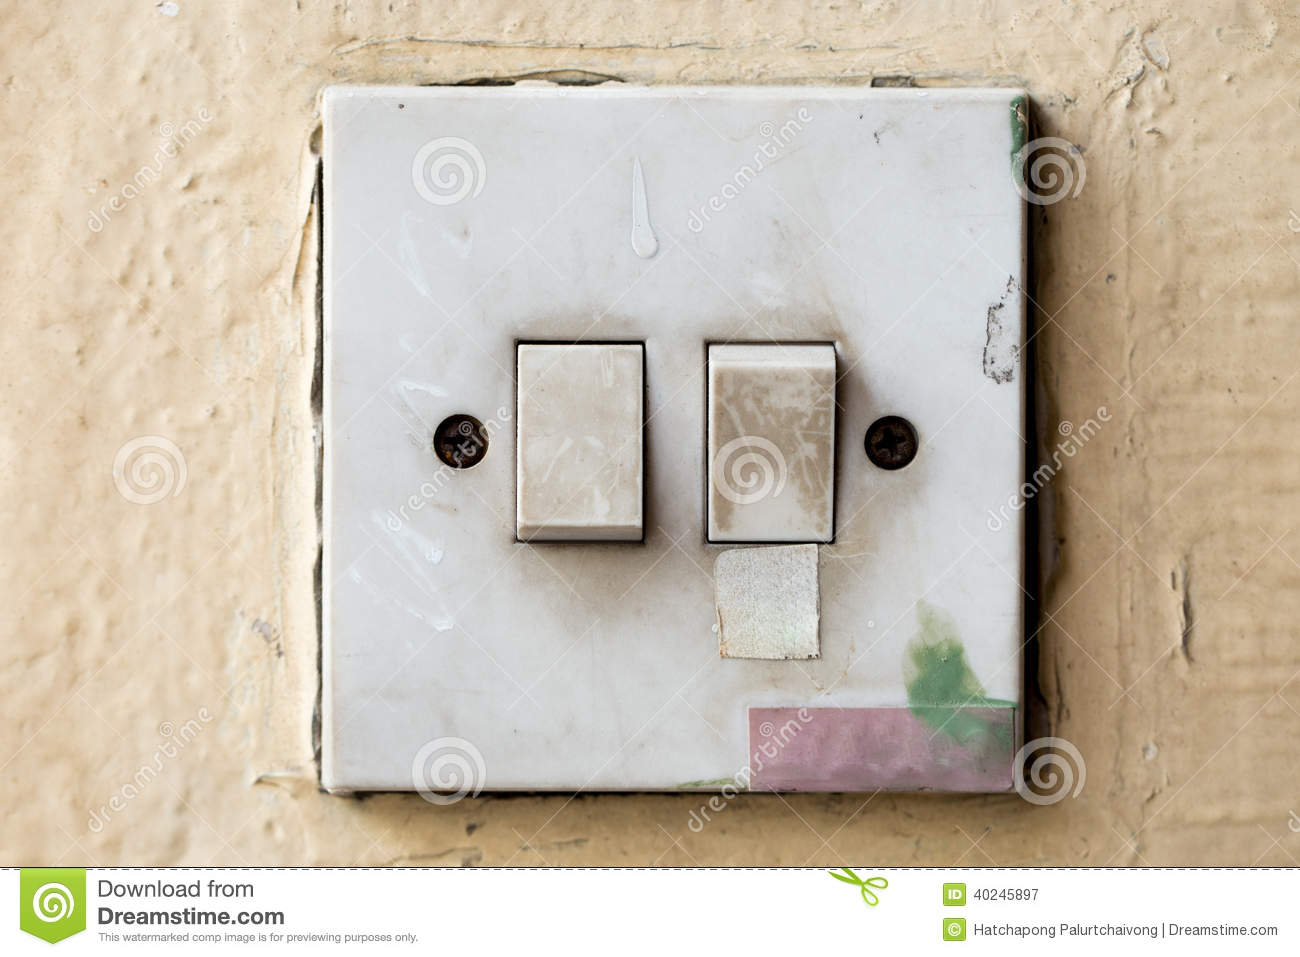 Light control switch stock image. Image of down, industrial - 40245897